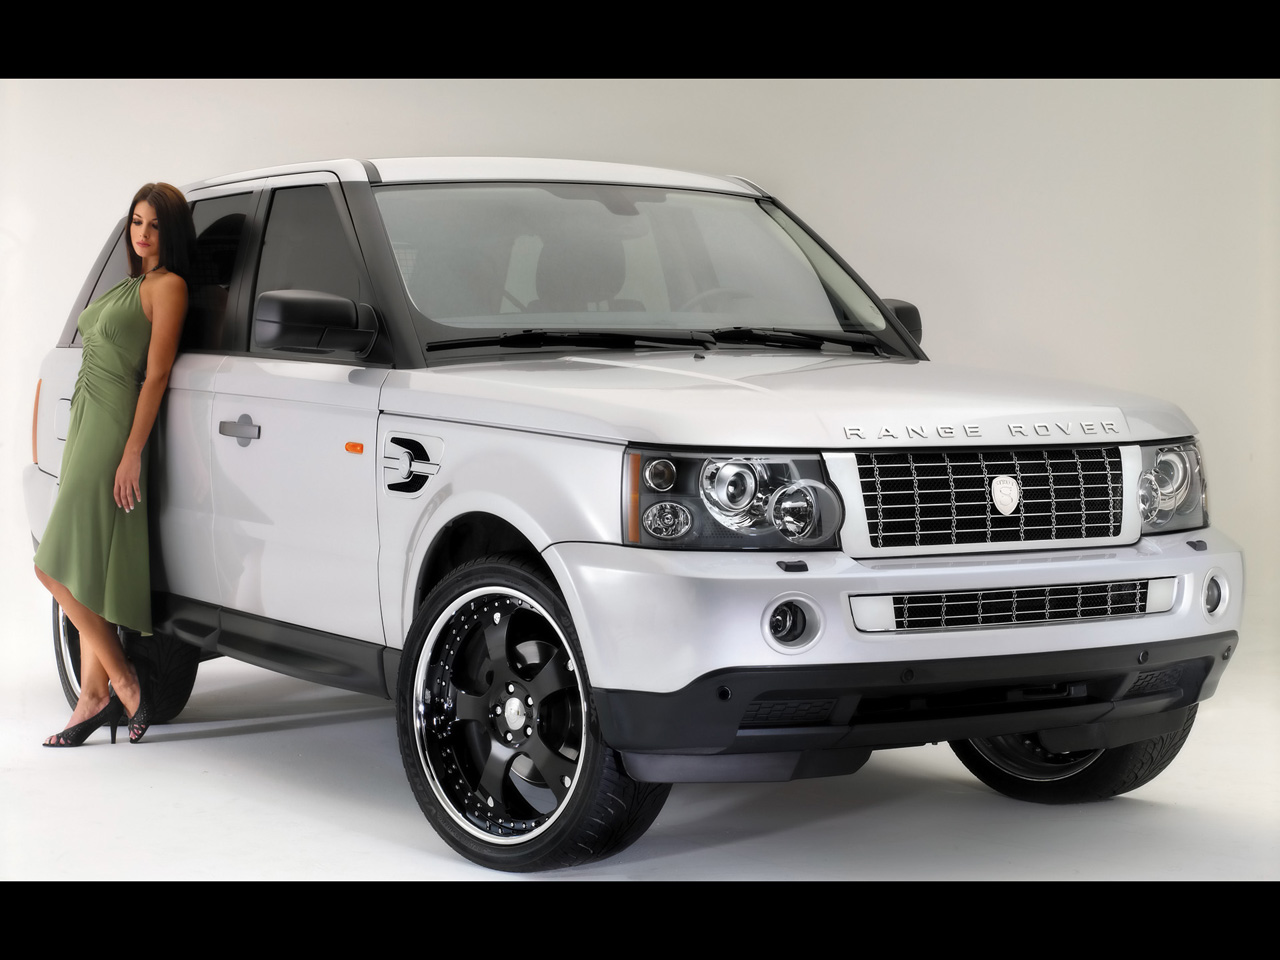 land rover range rover sport Free Download Image Of